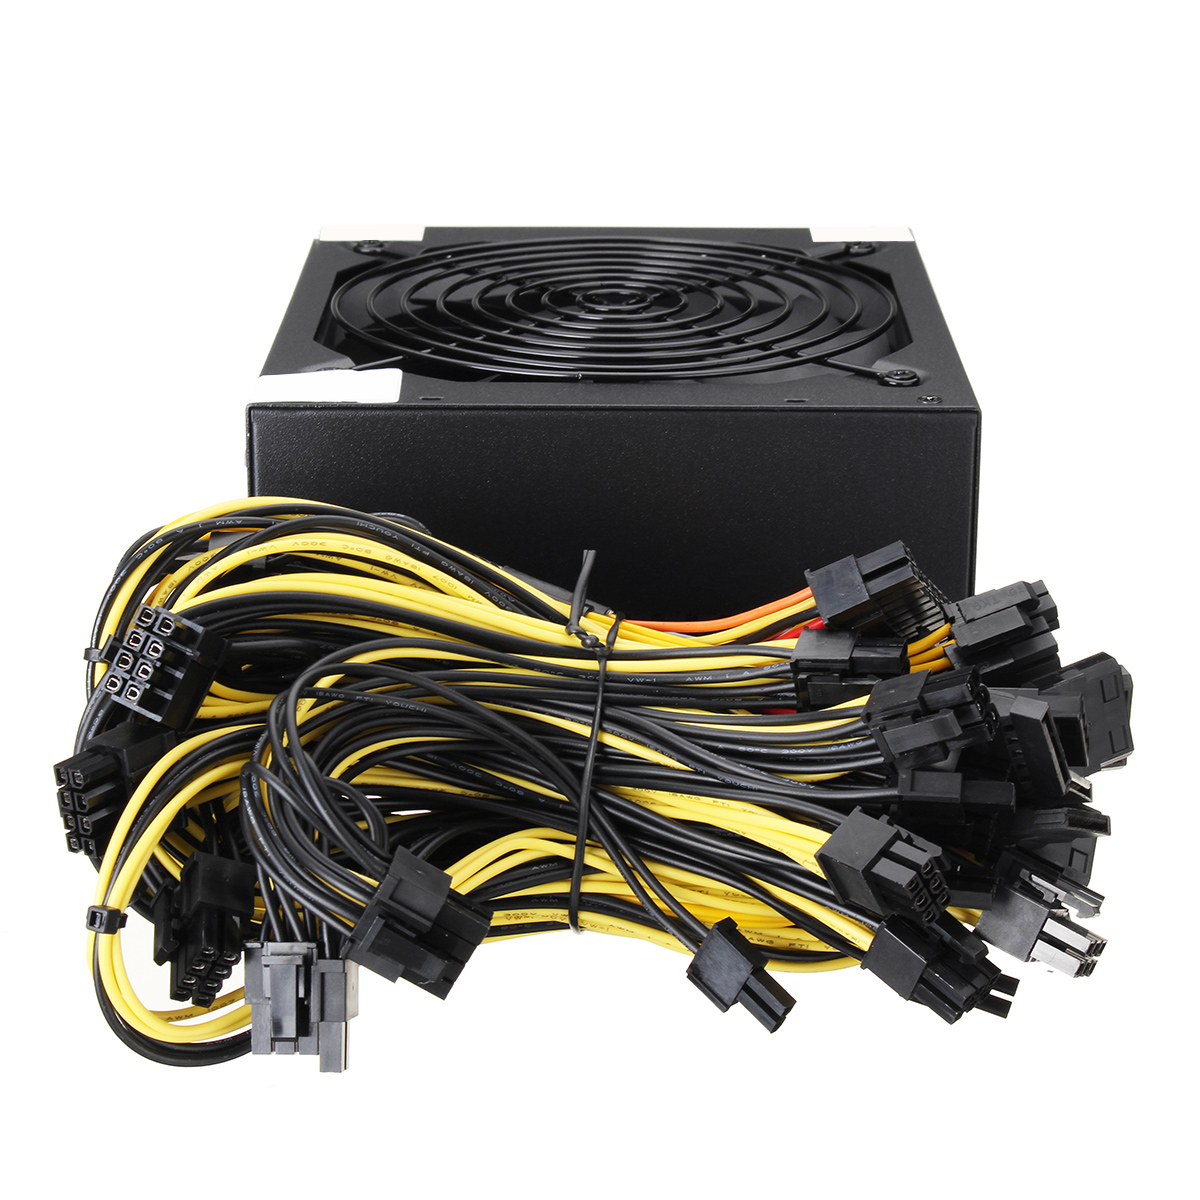 1800W Power Supply 91% For 6GPU Eth LTC Rig Ethereum Coin Mining Miner Dedicated